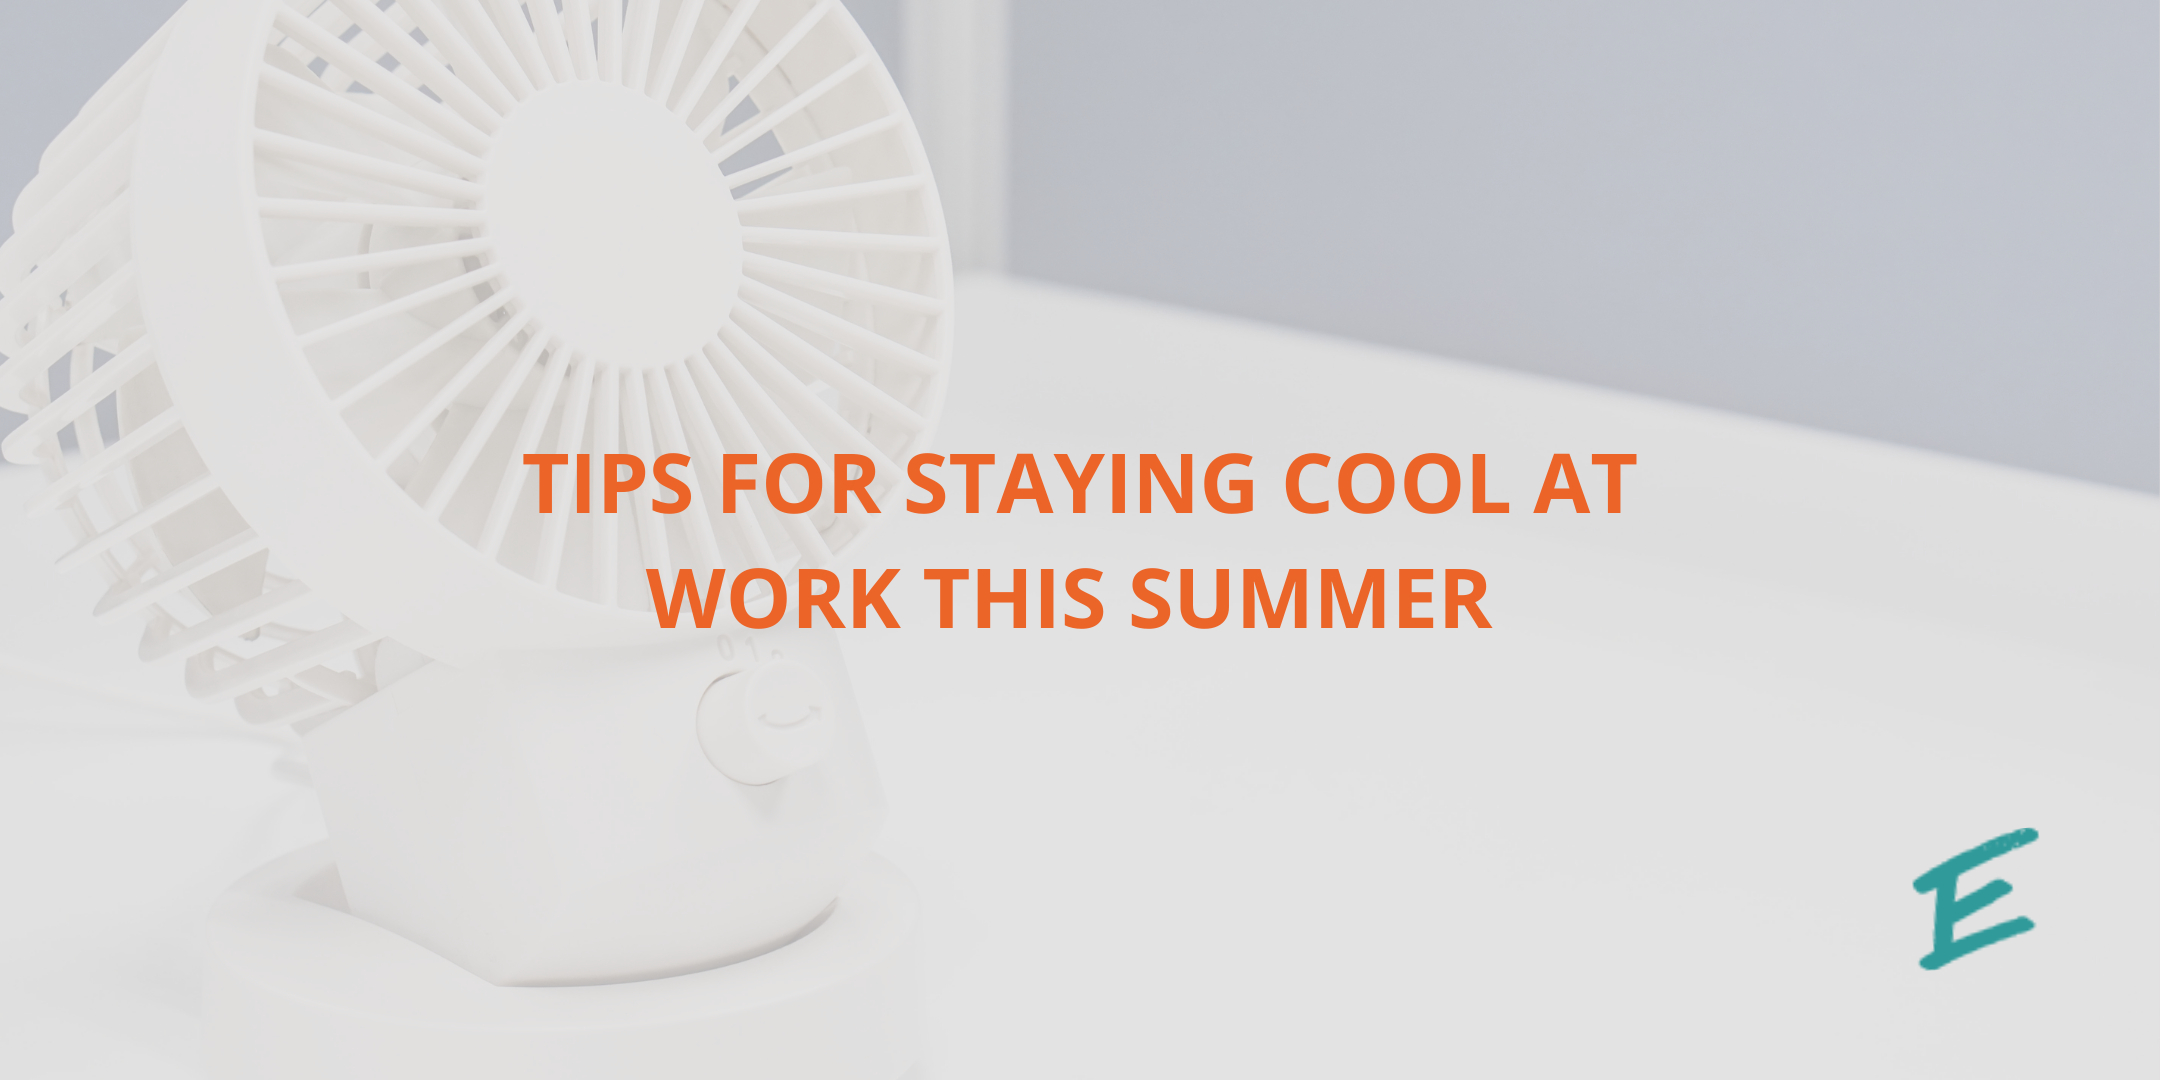 tips-for-staying-cool-at-work-this-summer